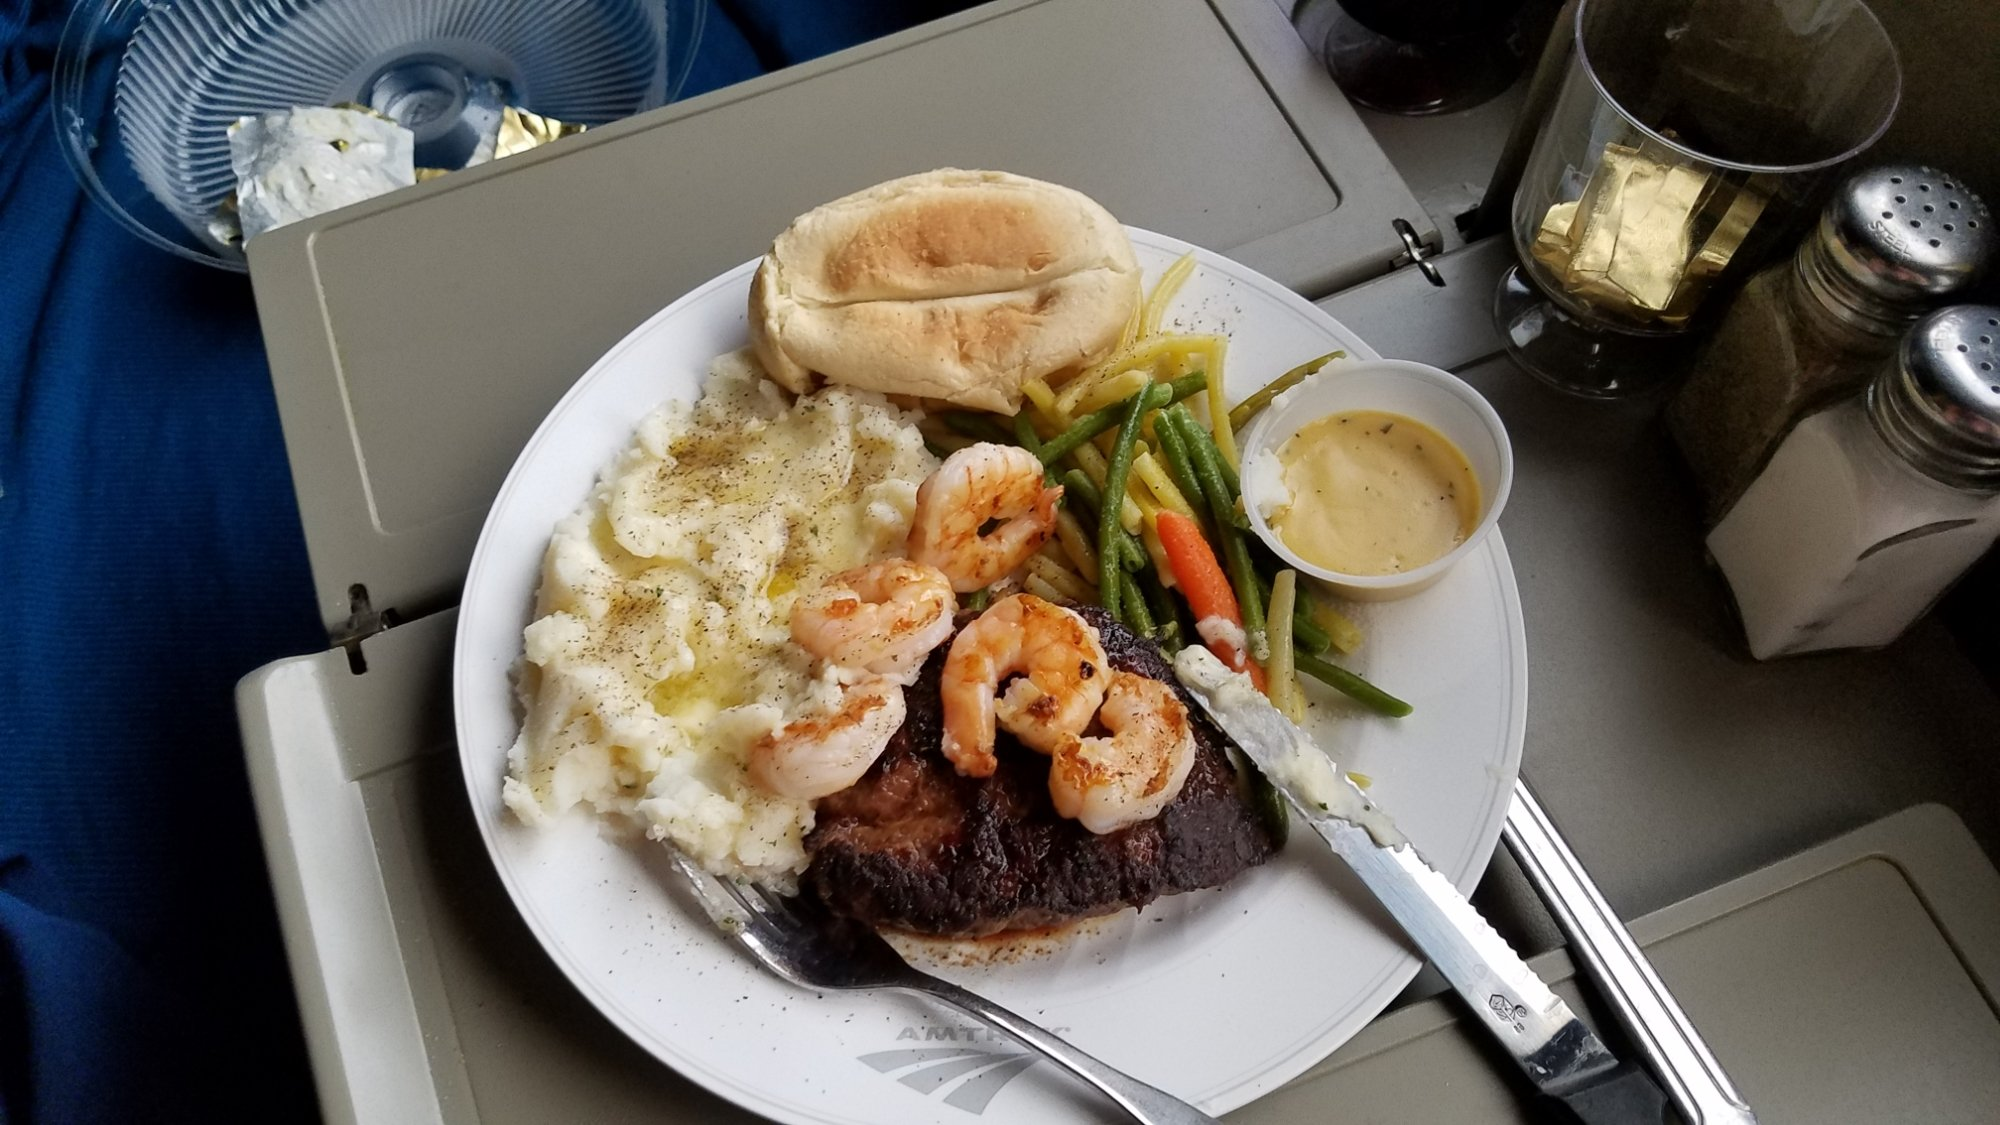 Amtrak S New Sleeping Car Menu Will Make Your Stomach Rumble